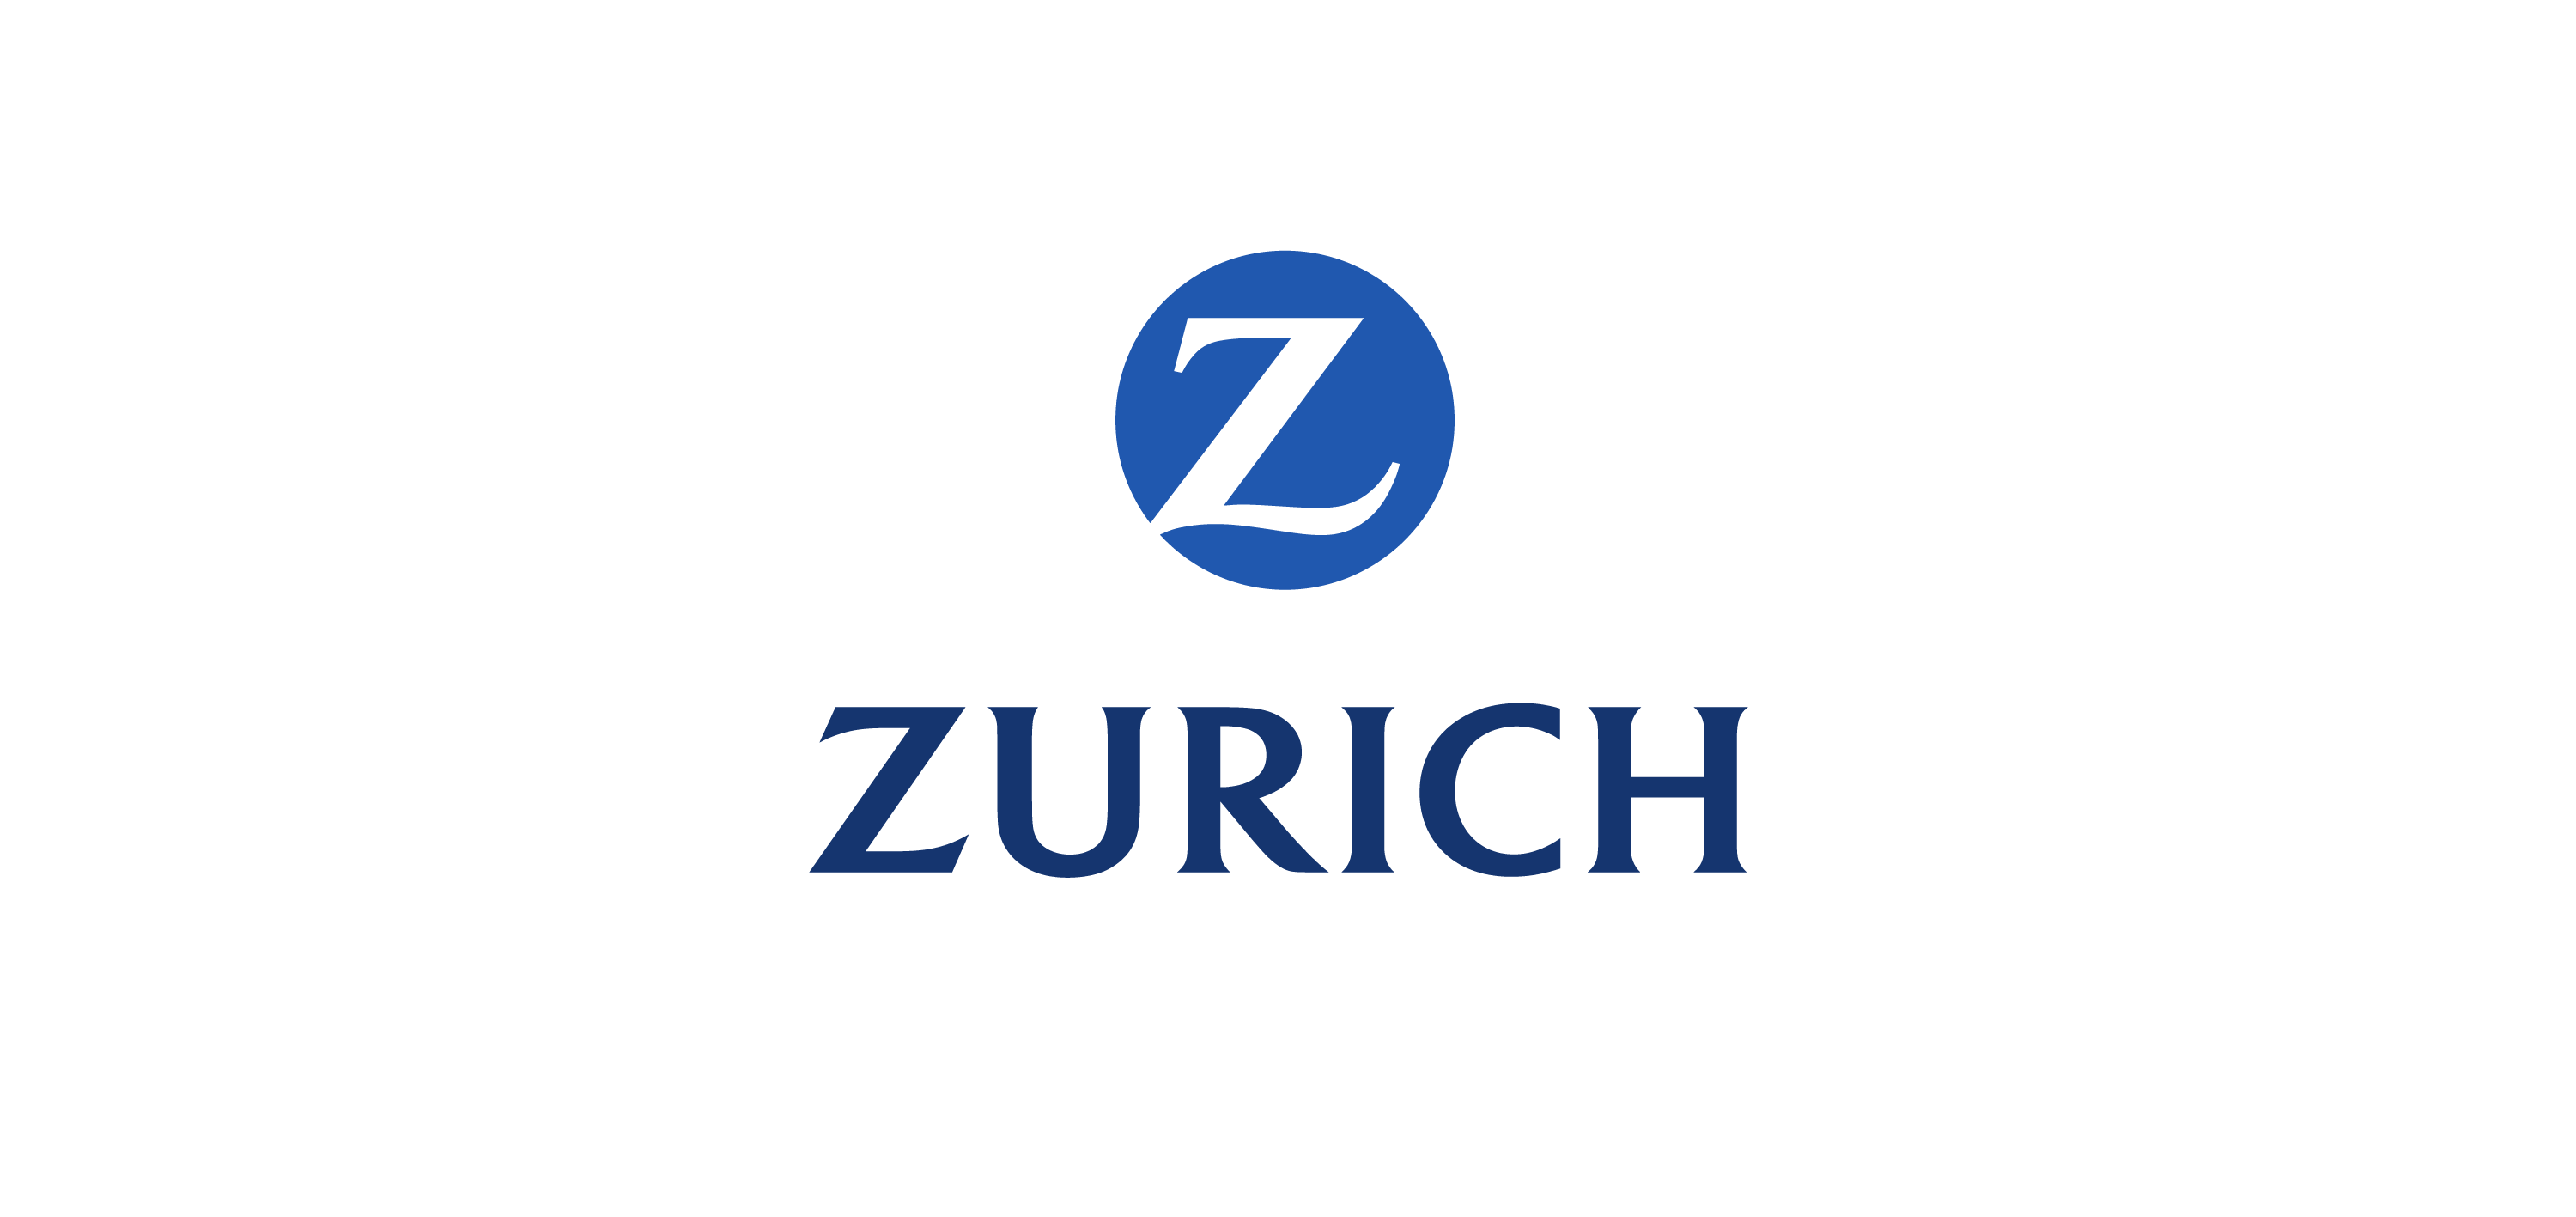 Zurich Insurance logo vector-01